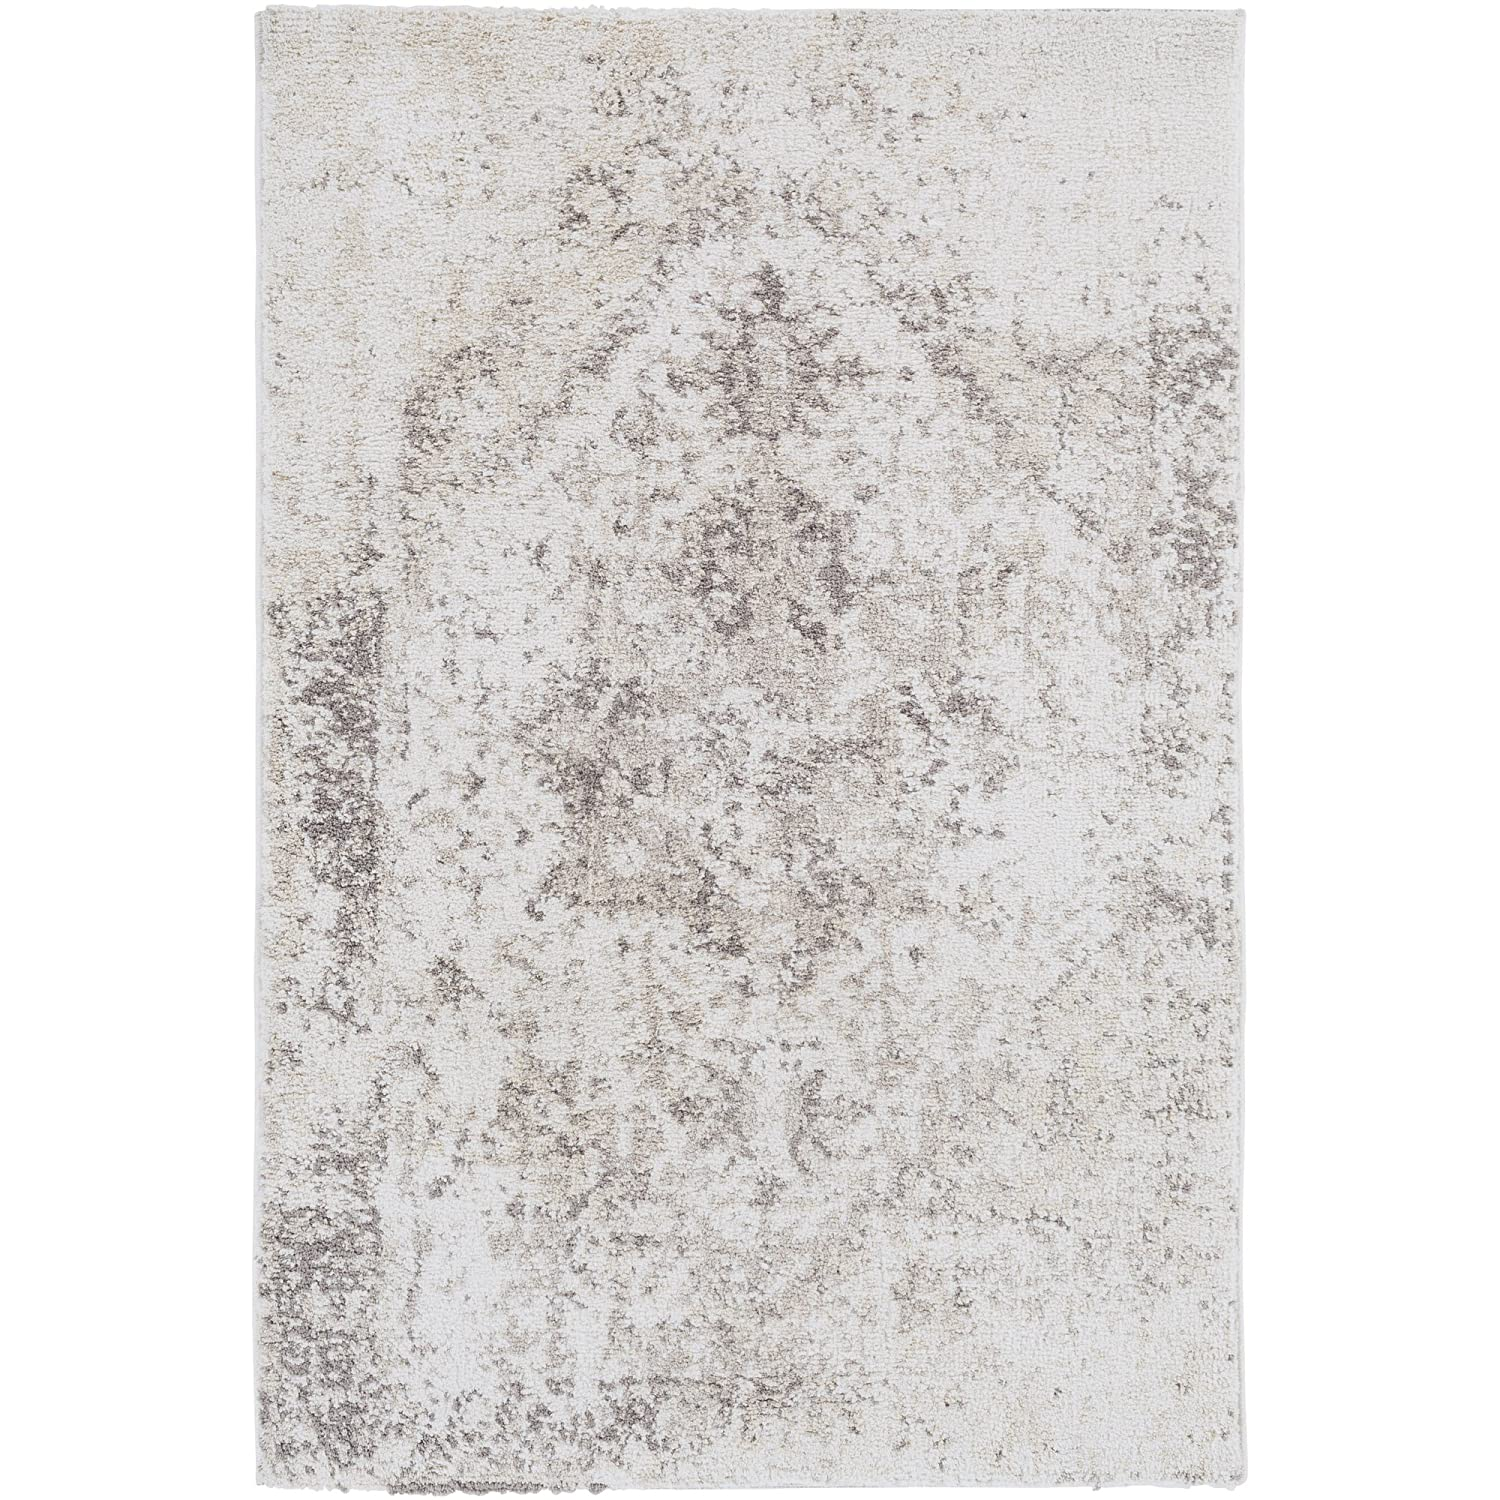 Ashleigh Medium Gray Updated Traditional Area Rug 2' x 3'